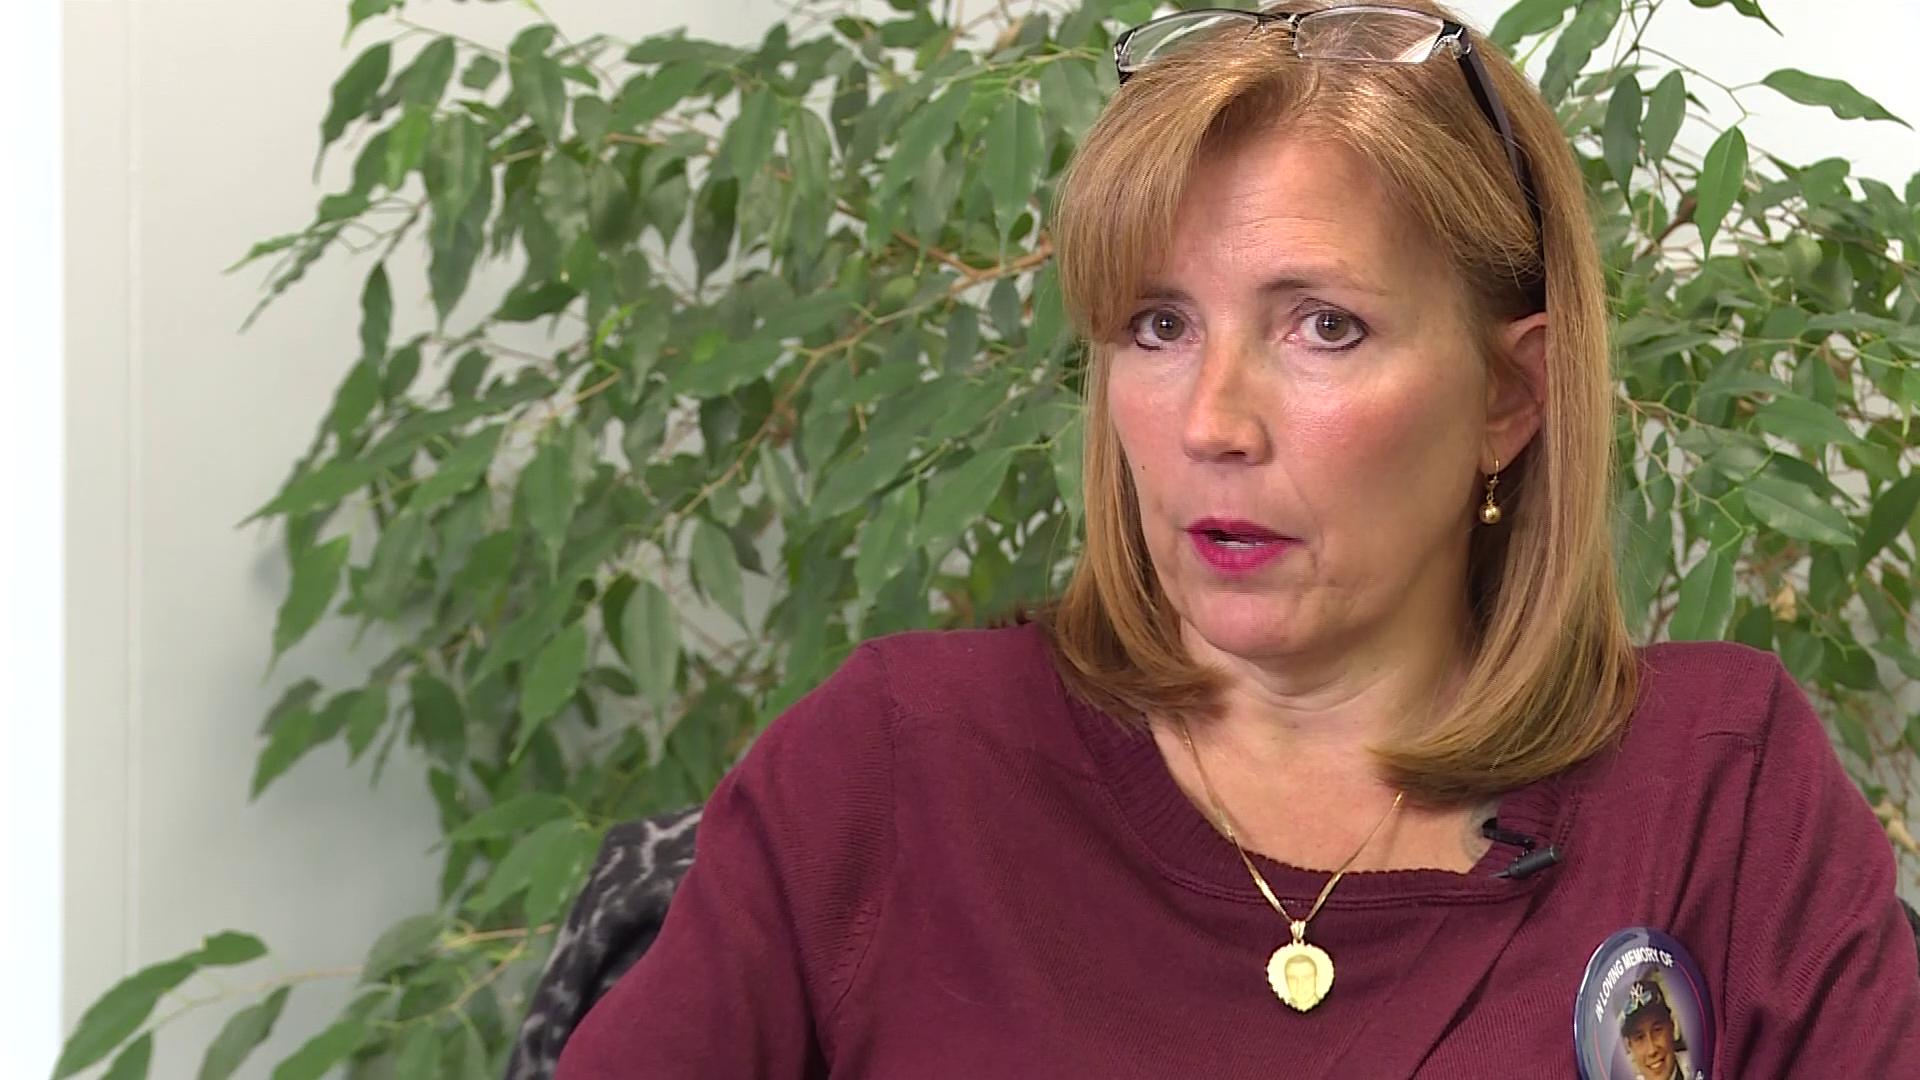 WEB EXTRA: Scranton mother remembers son lost to distracted driving